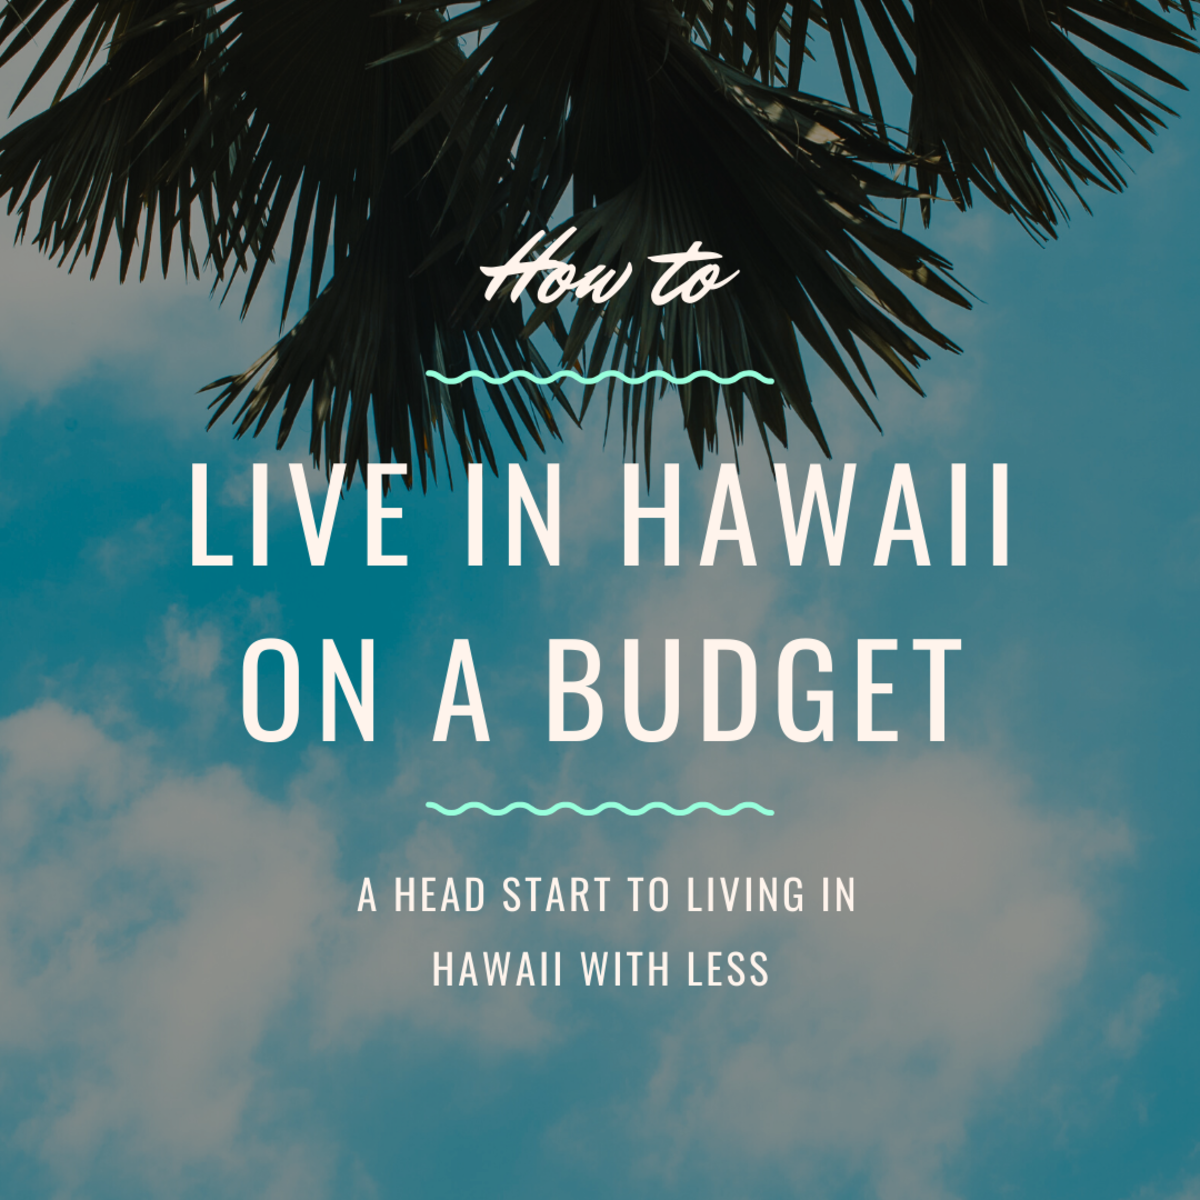 12 Ways to Live in Hawaii on a Budget